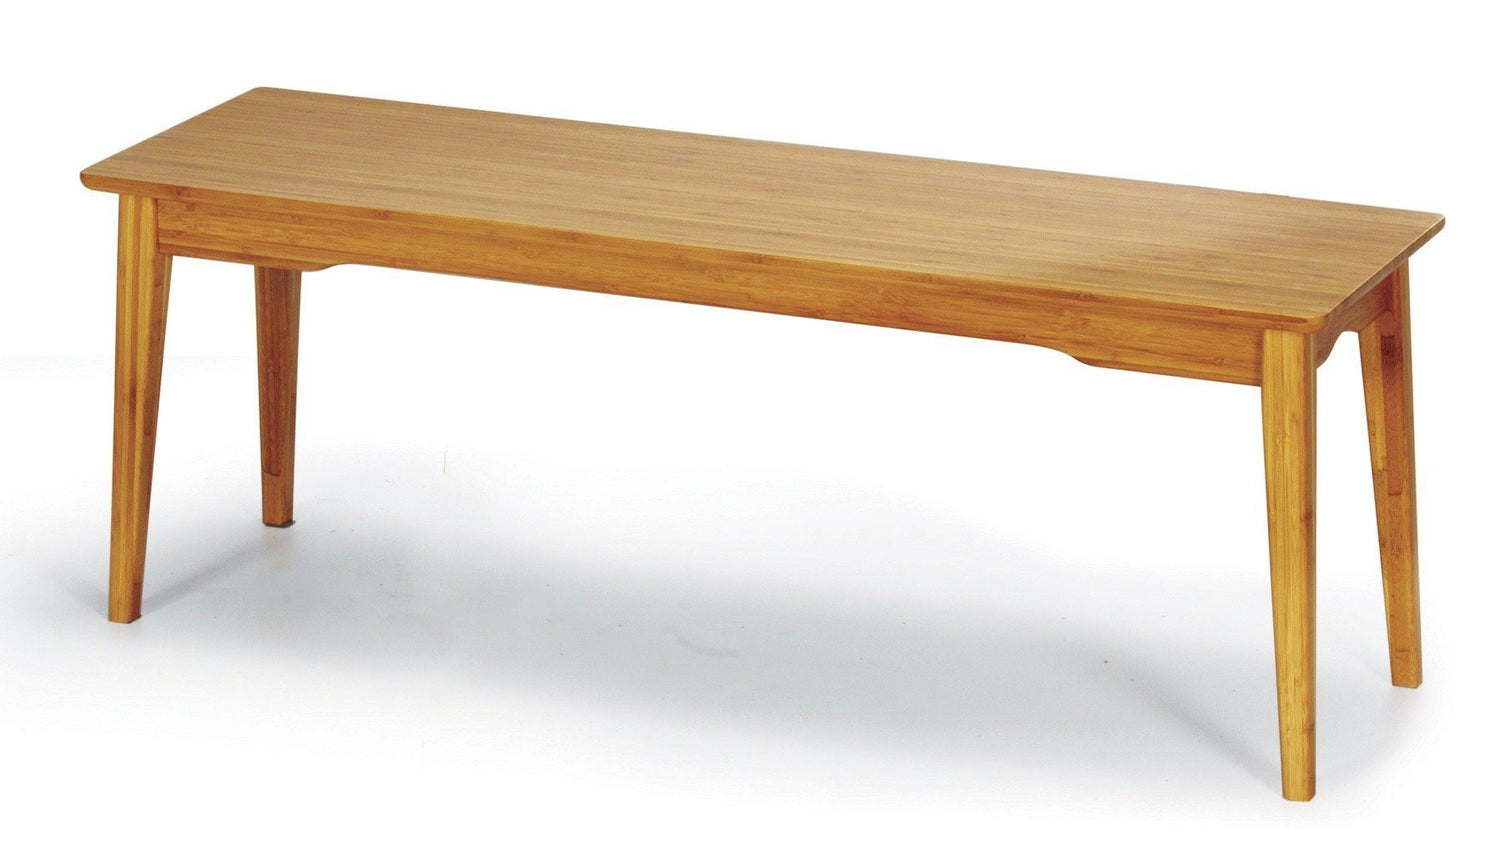 Greenington Currant Short Bench, Caramelized Greenington